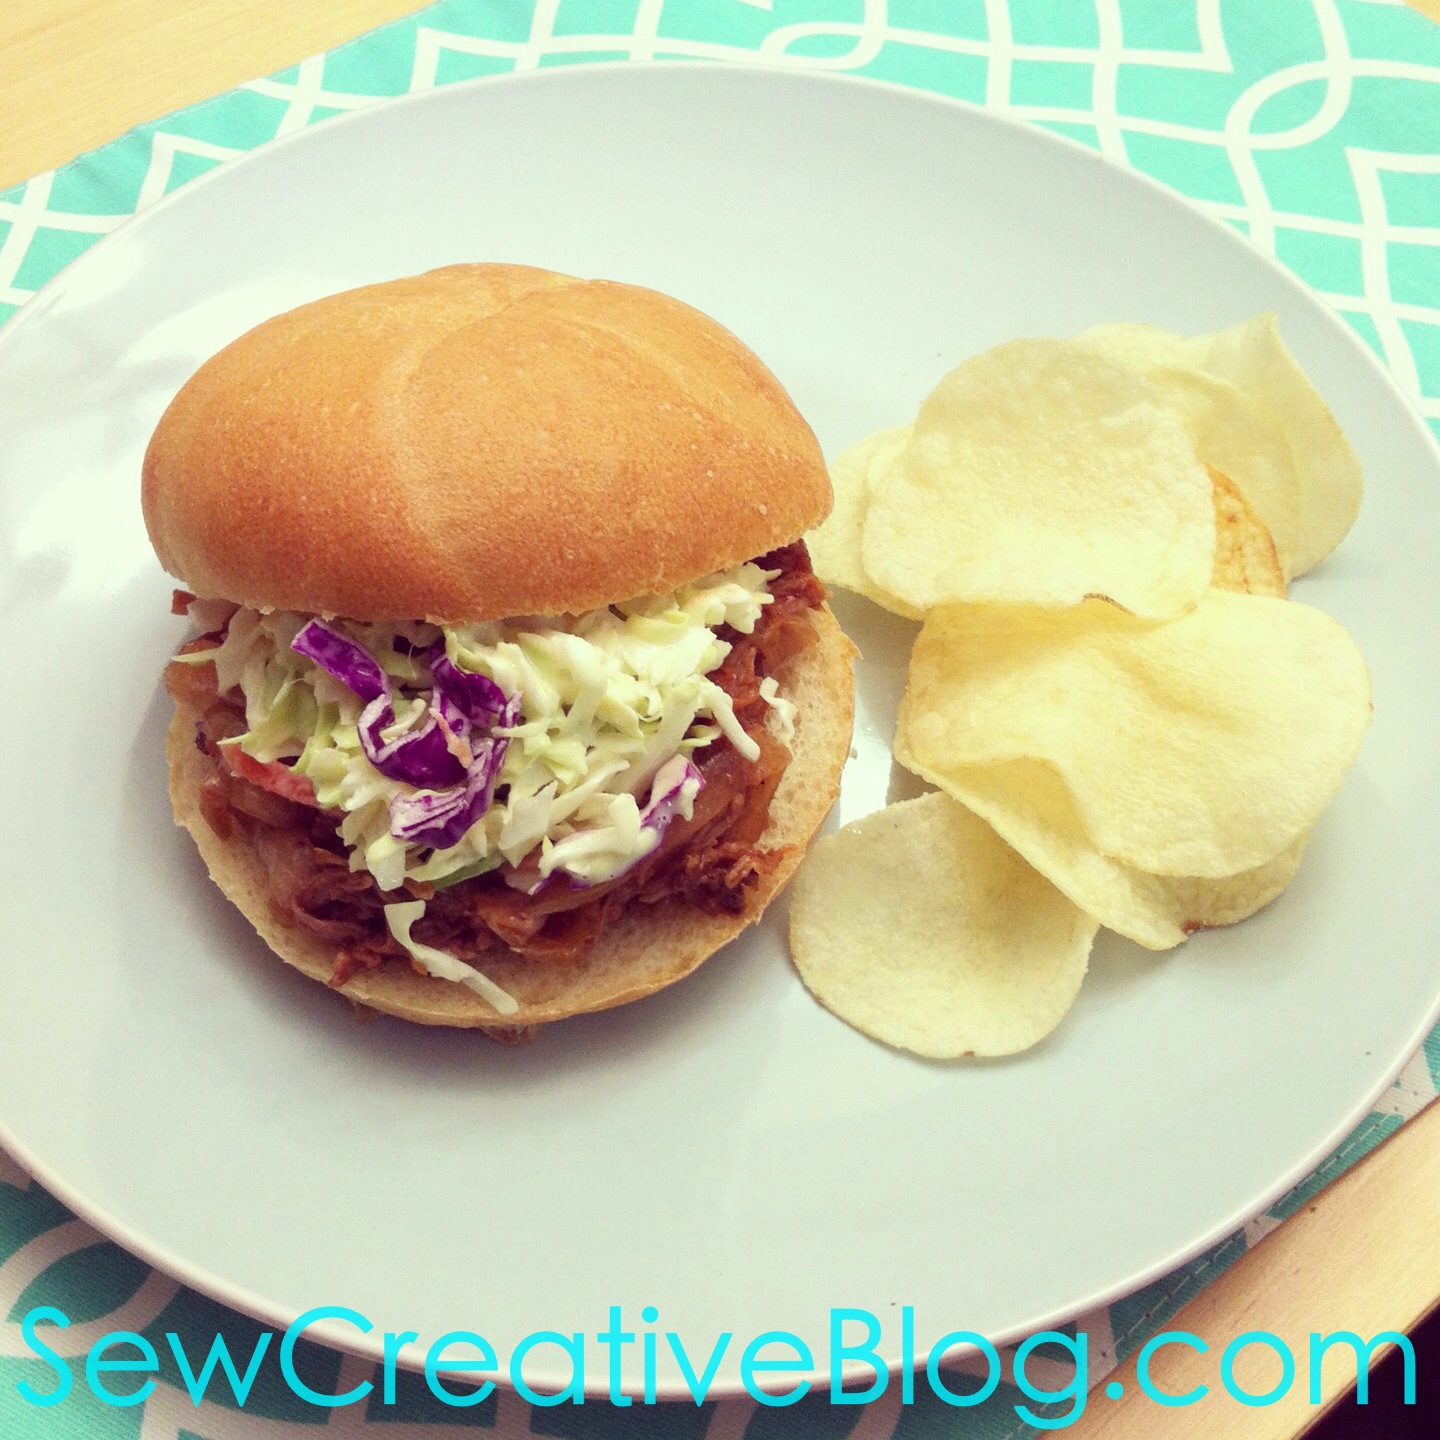 Crockpot Soda Pop Pulled Pork Sandwich Recipe from Sew Creative 2